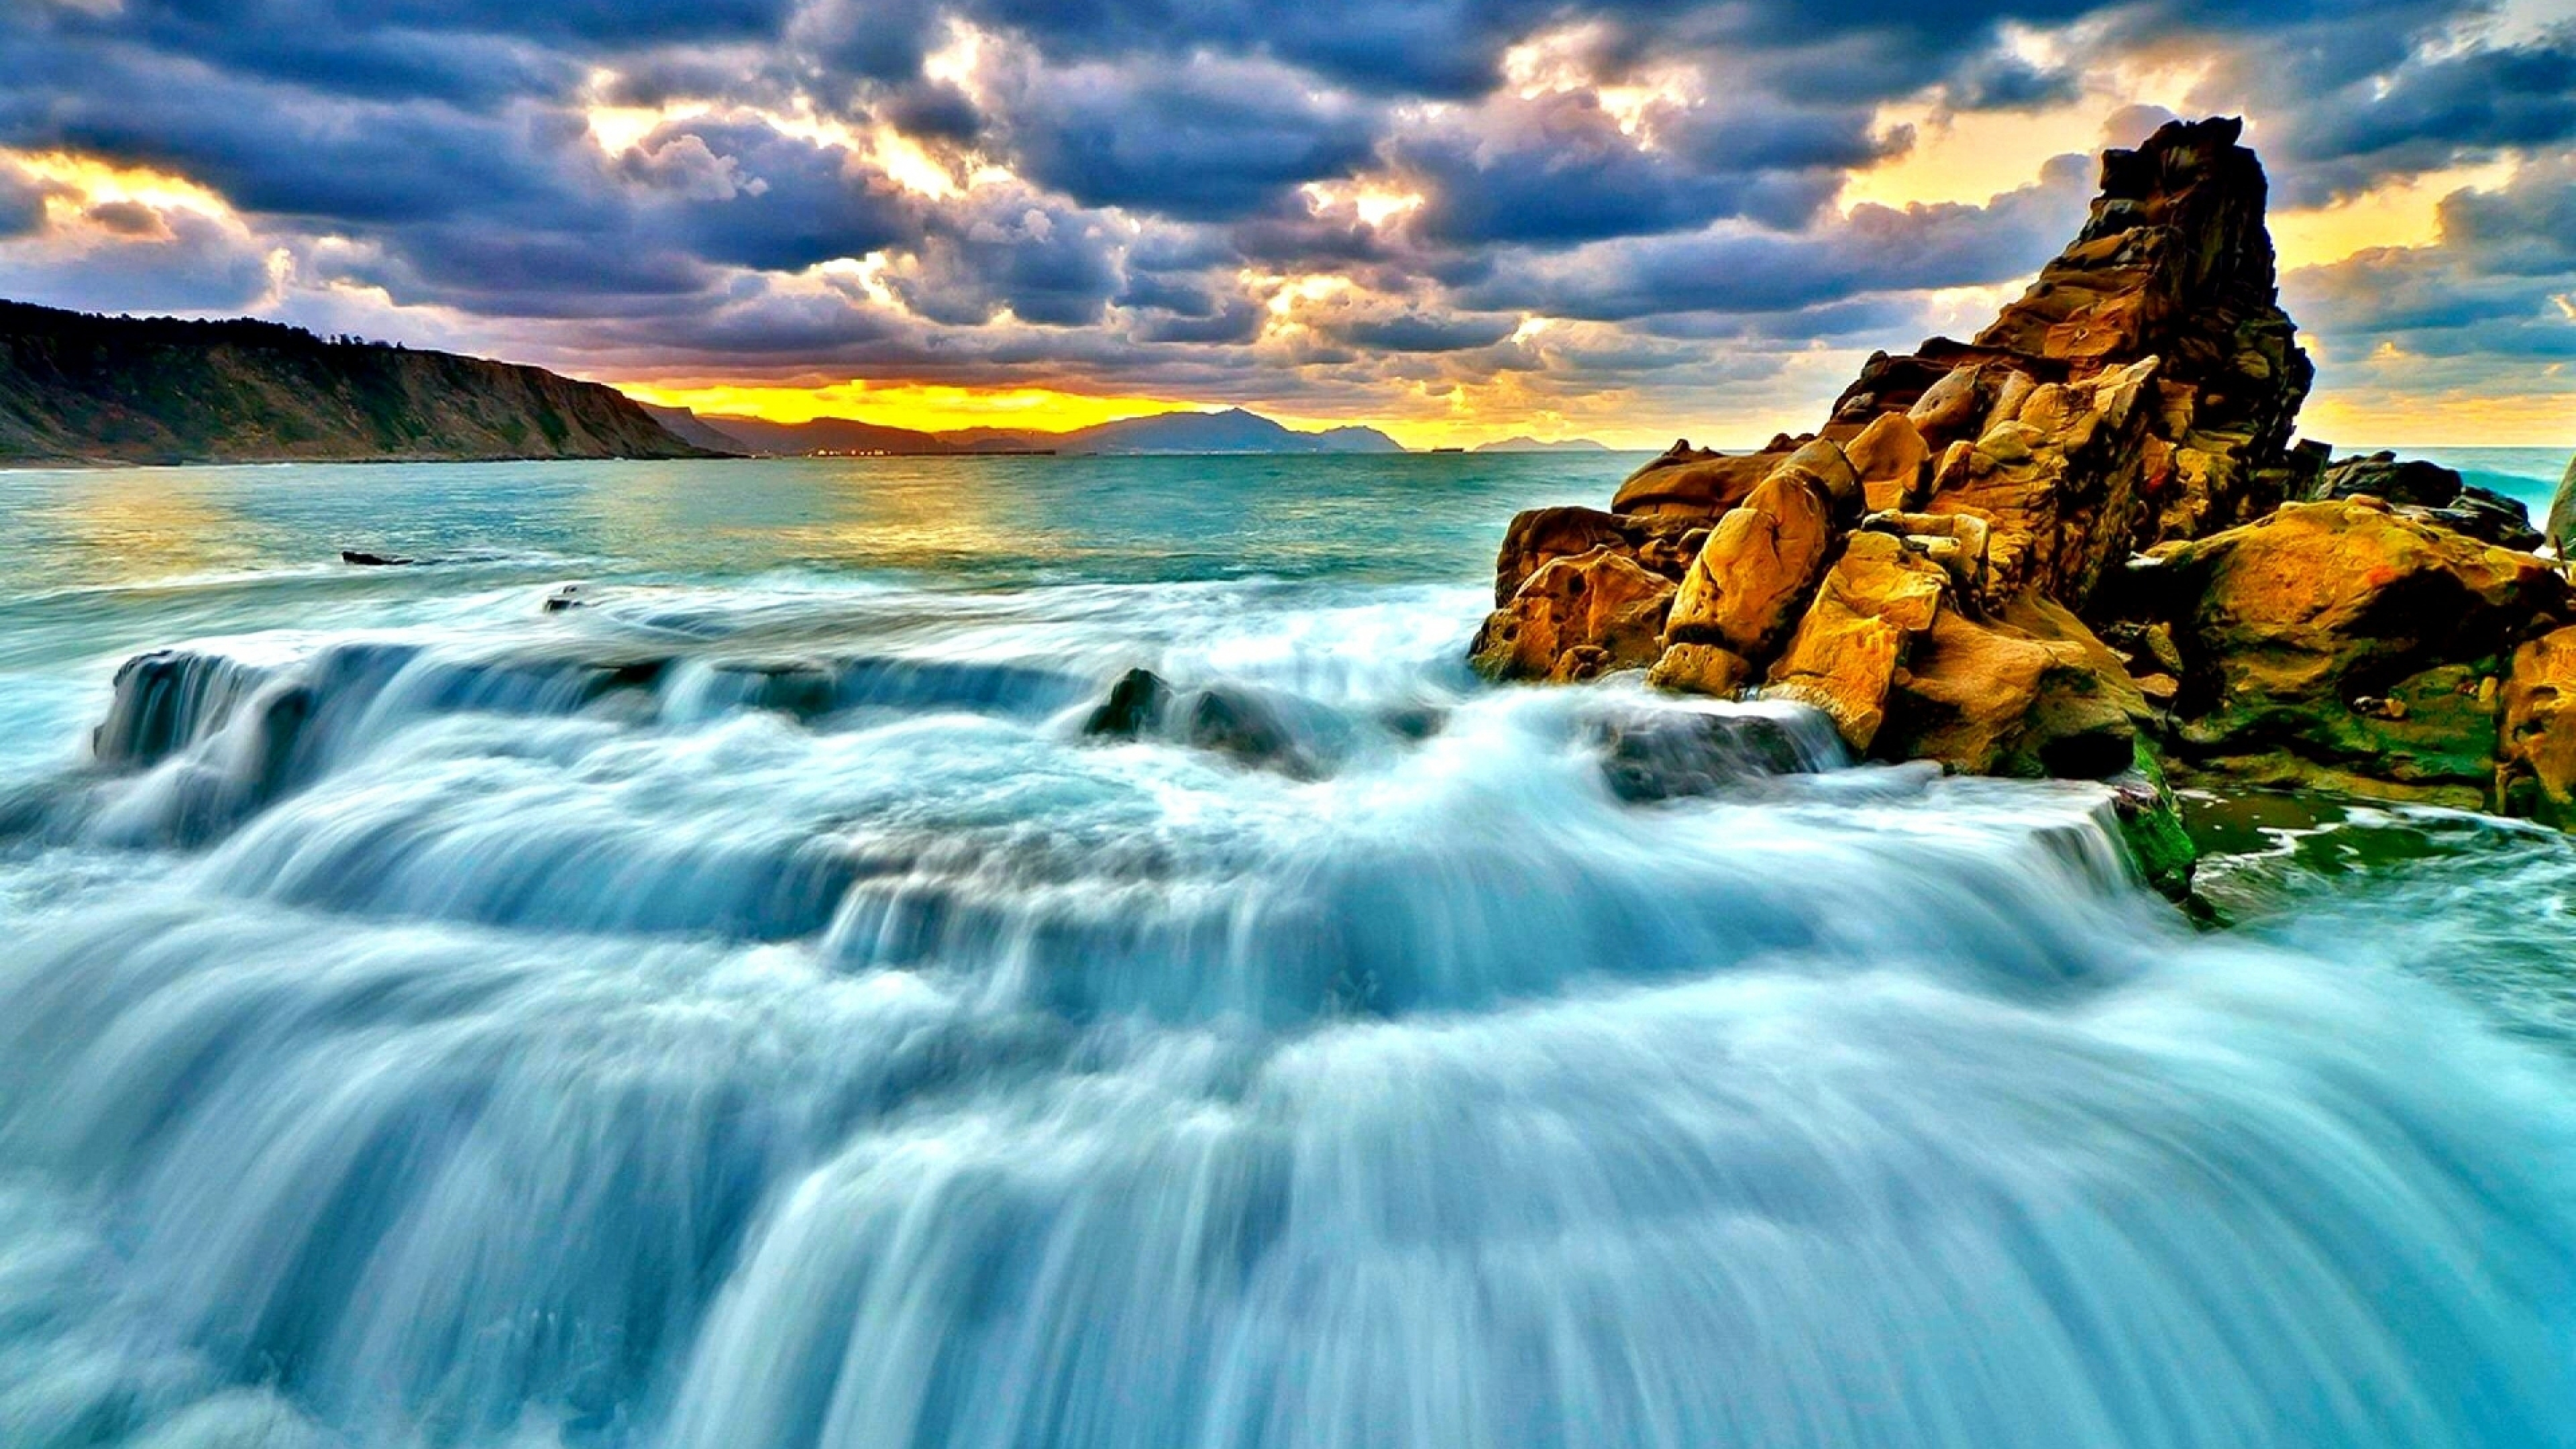 High Definition Wallpapers High: Waterfall Wallpaper High Quality